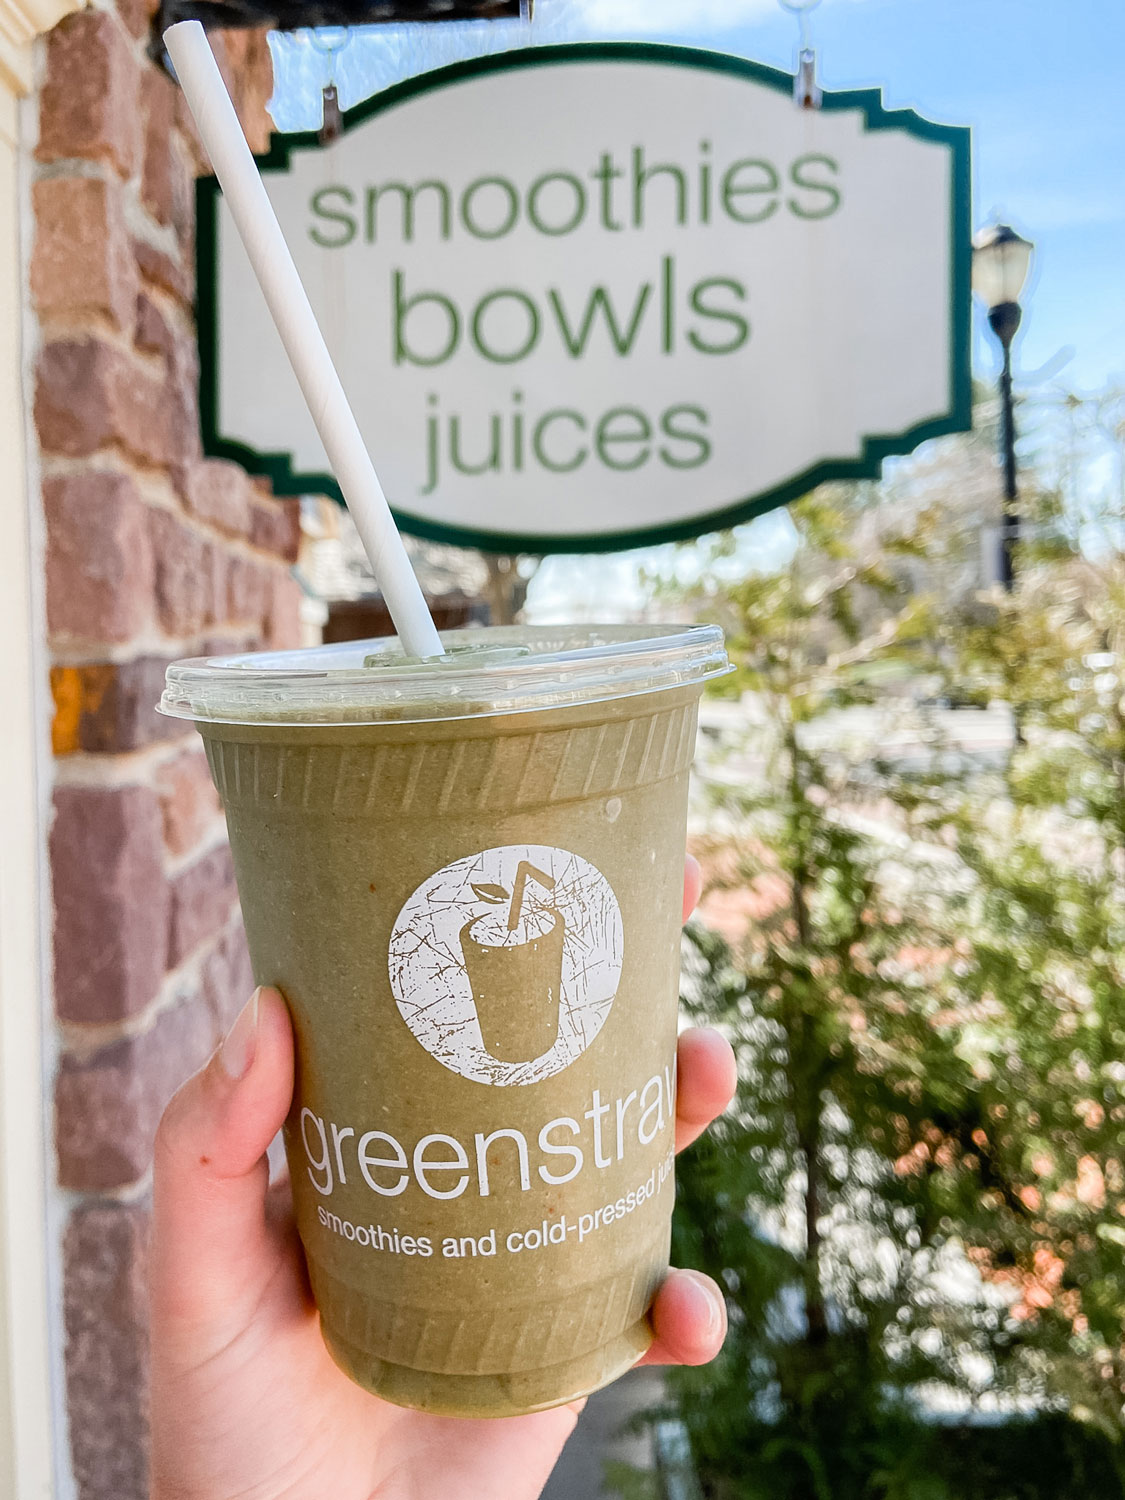 A green smoothie from Greenstraw.